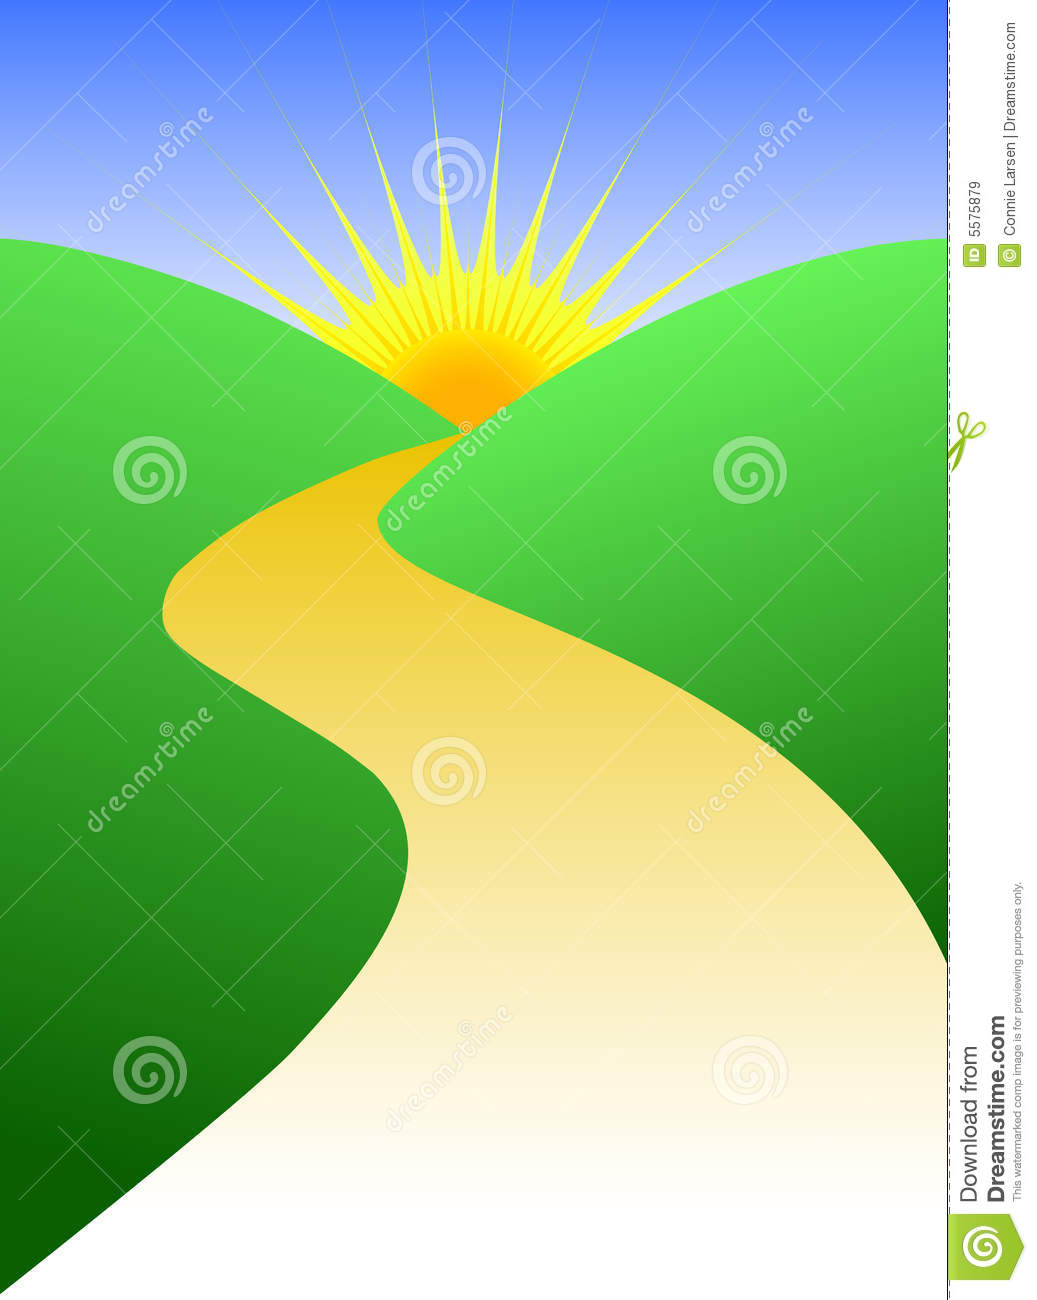 Stylized Illustration Of A Winding Golden Path Leading To A Horizon